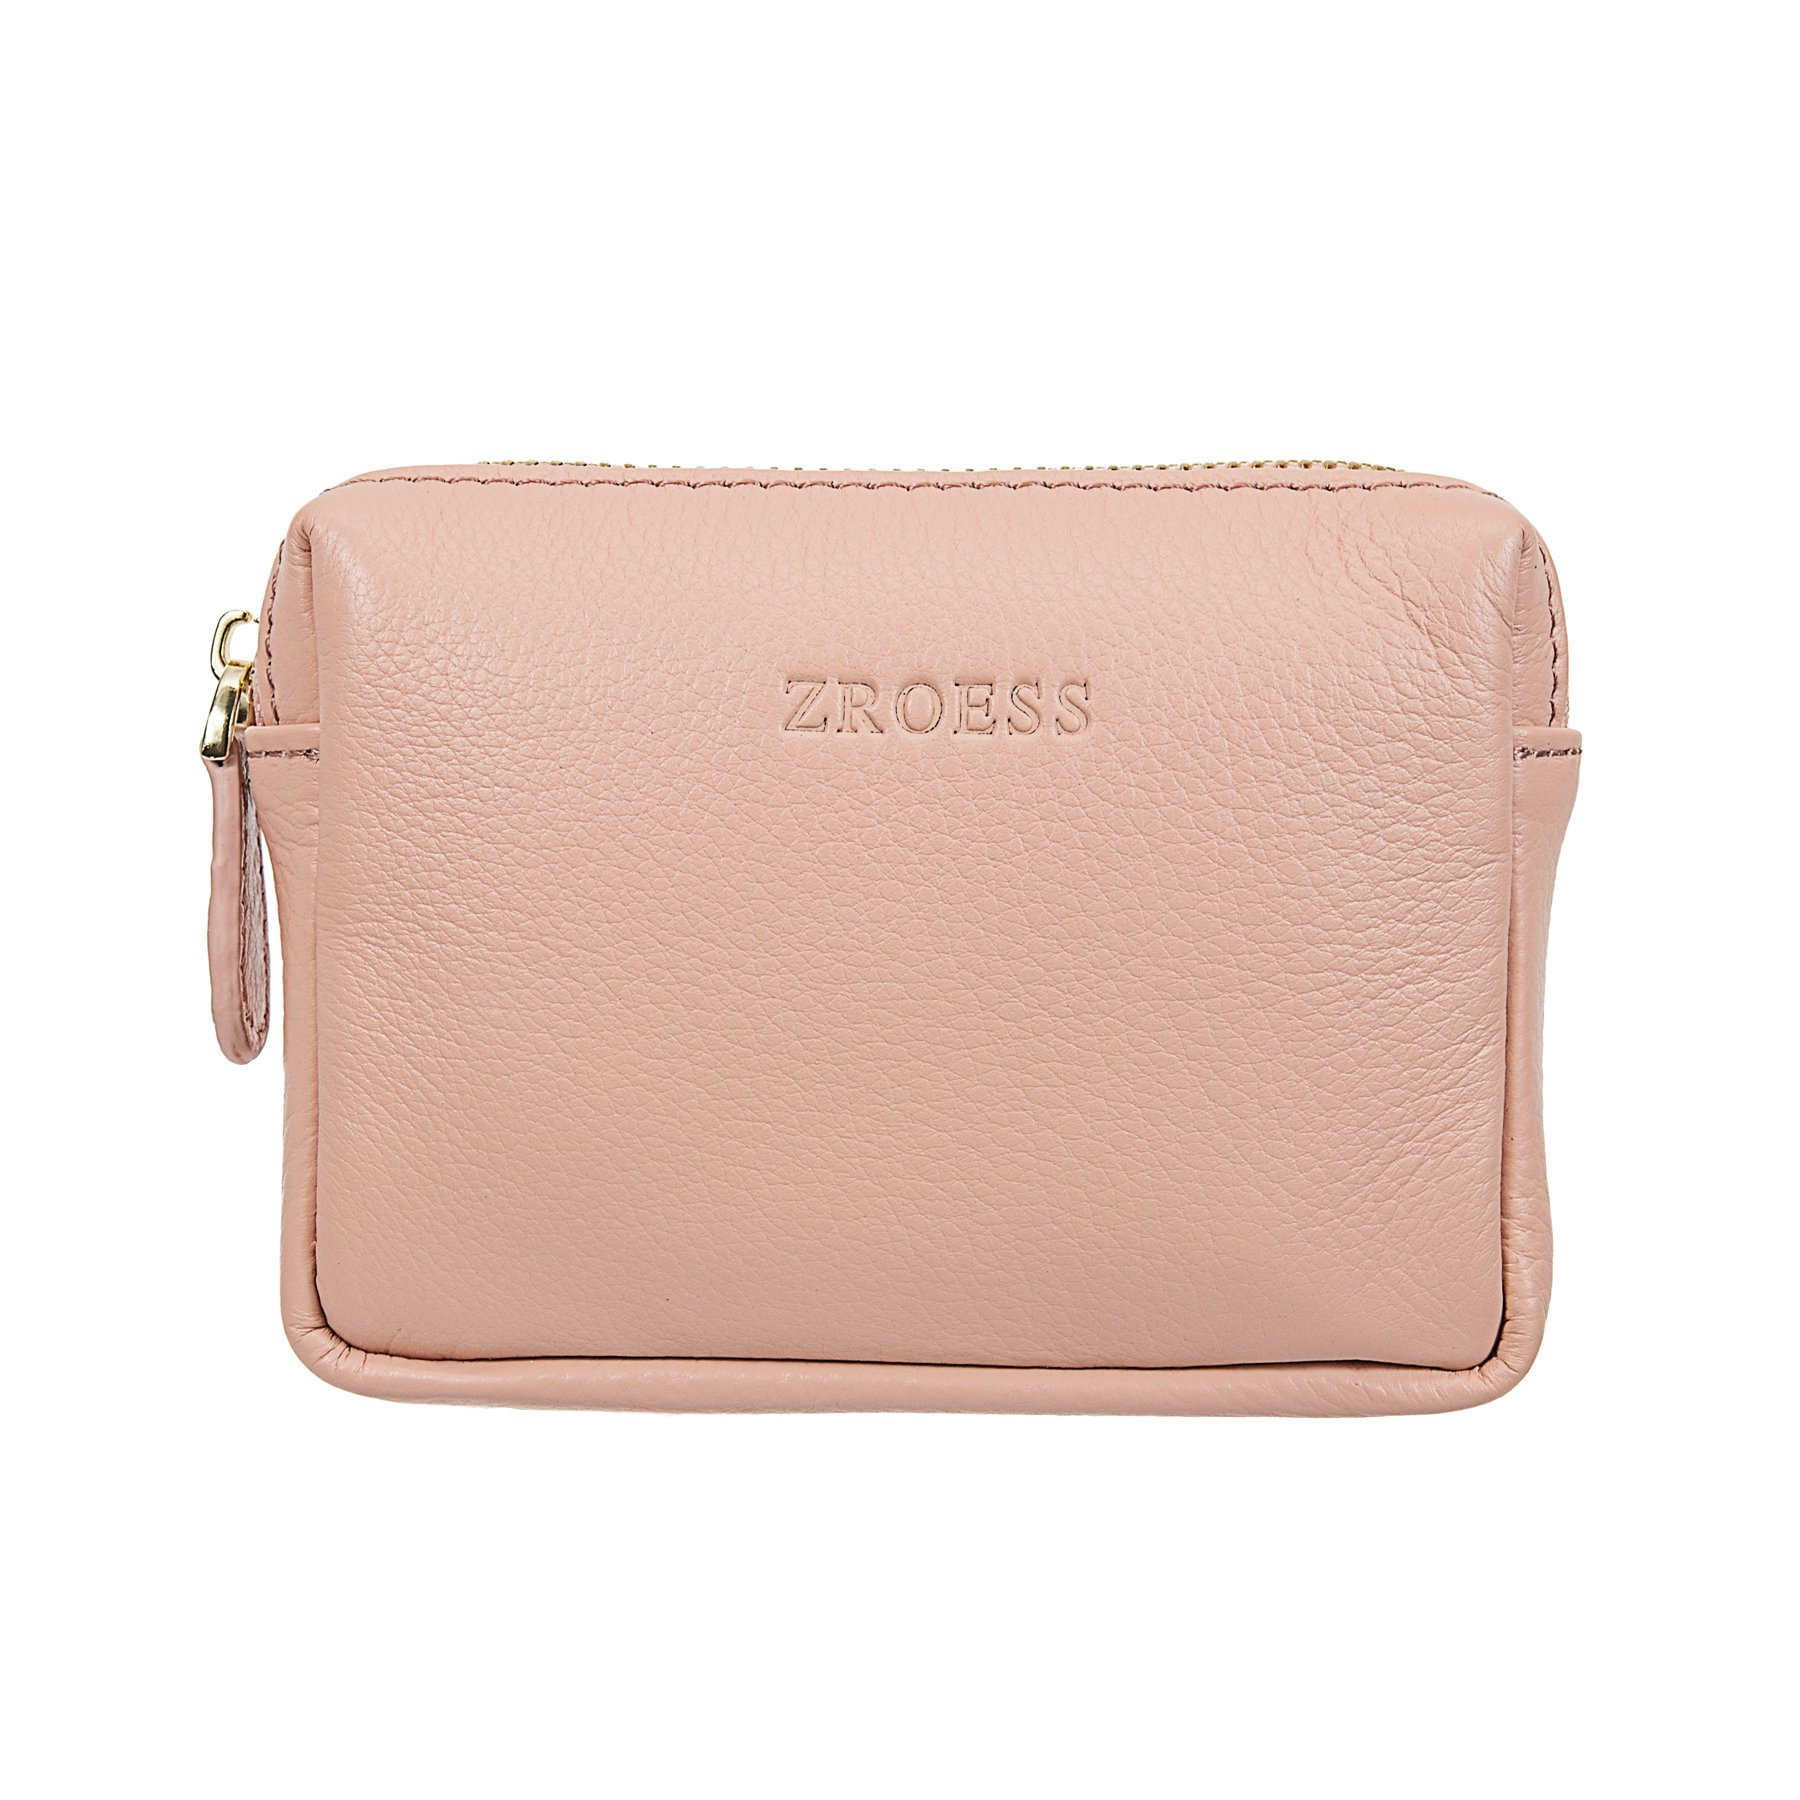 ZORESS Mini Soft Leather Coin Purse Card Holder with Key Chain (Pink)